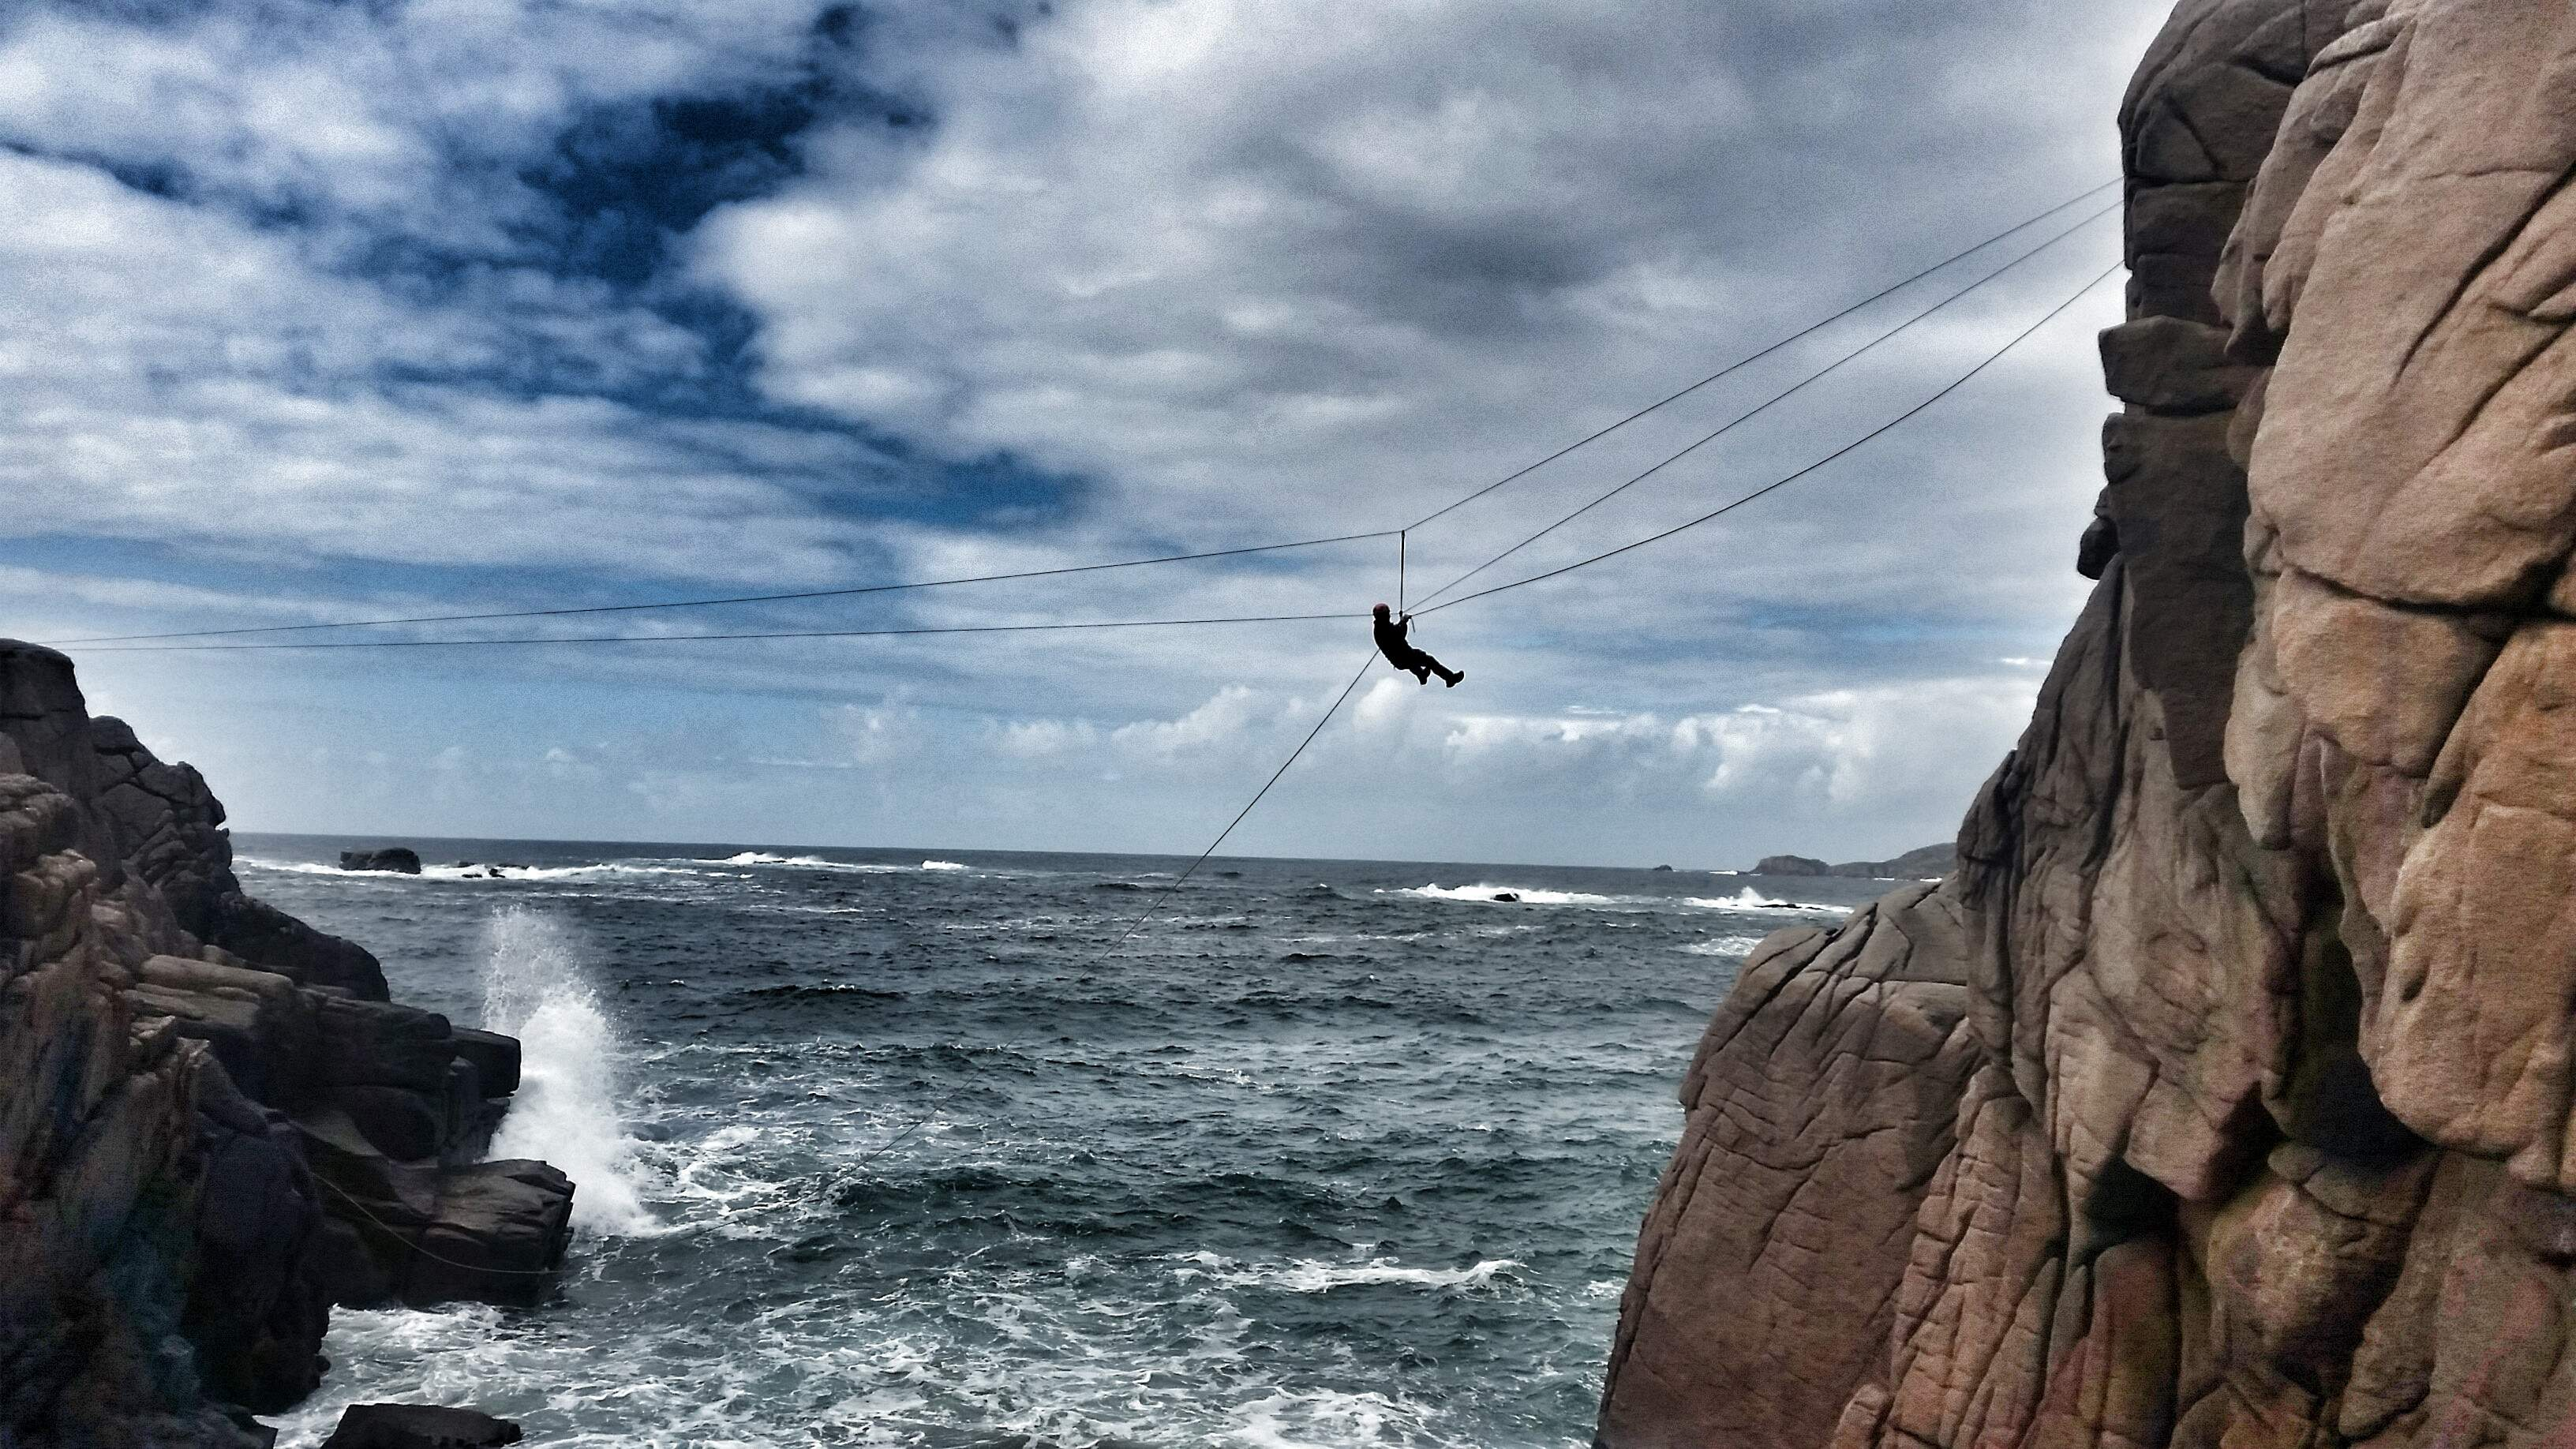 Things to do in County Donegal, Ireland - Donegal Rock Climbing - YourDaysOut